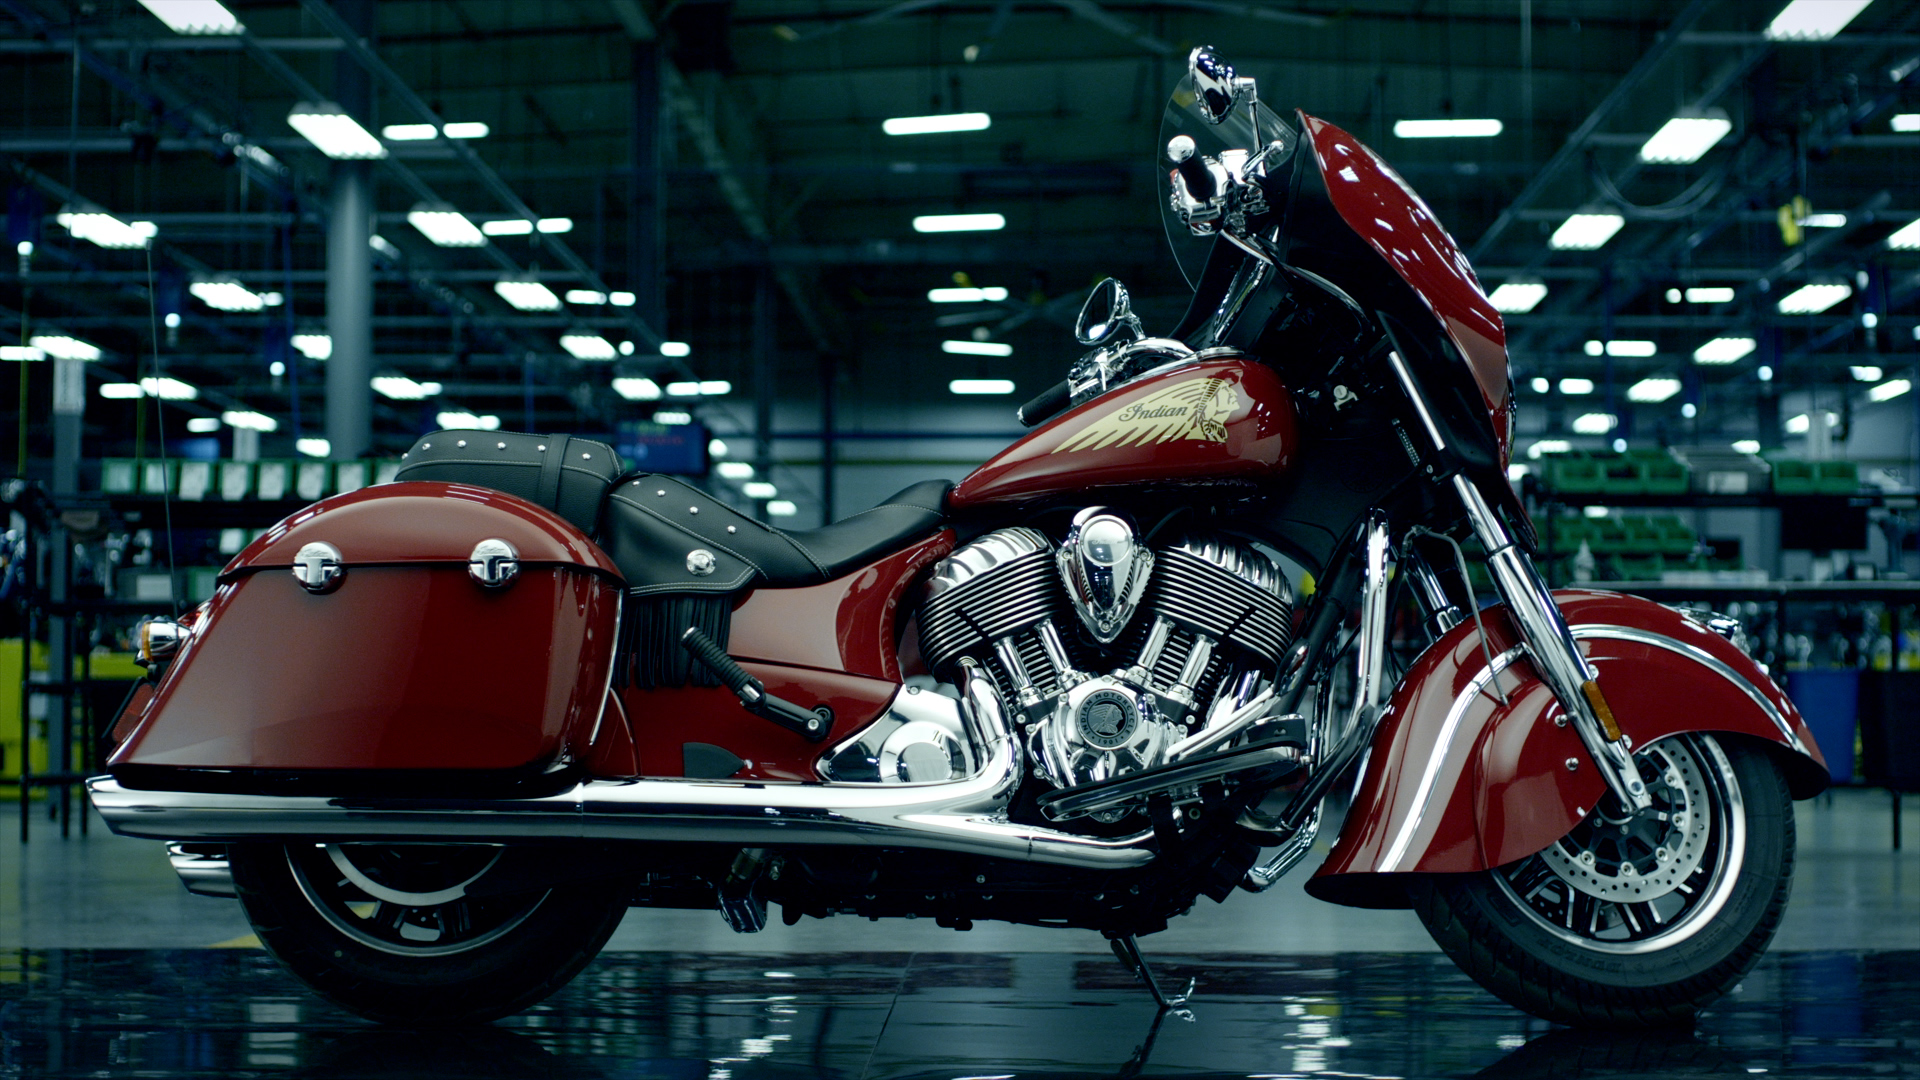 HISTORY & INDIAN MOTORCYCLE